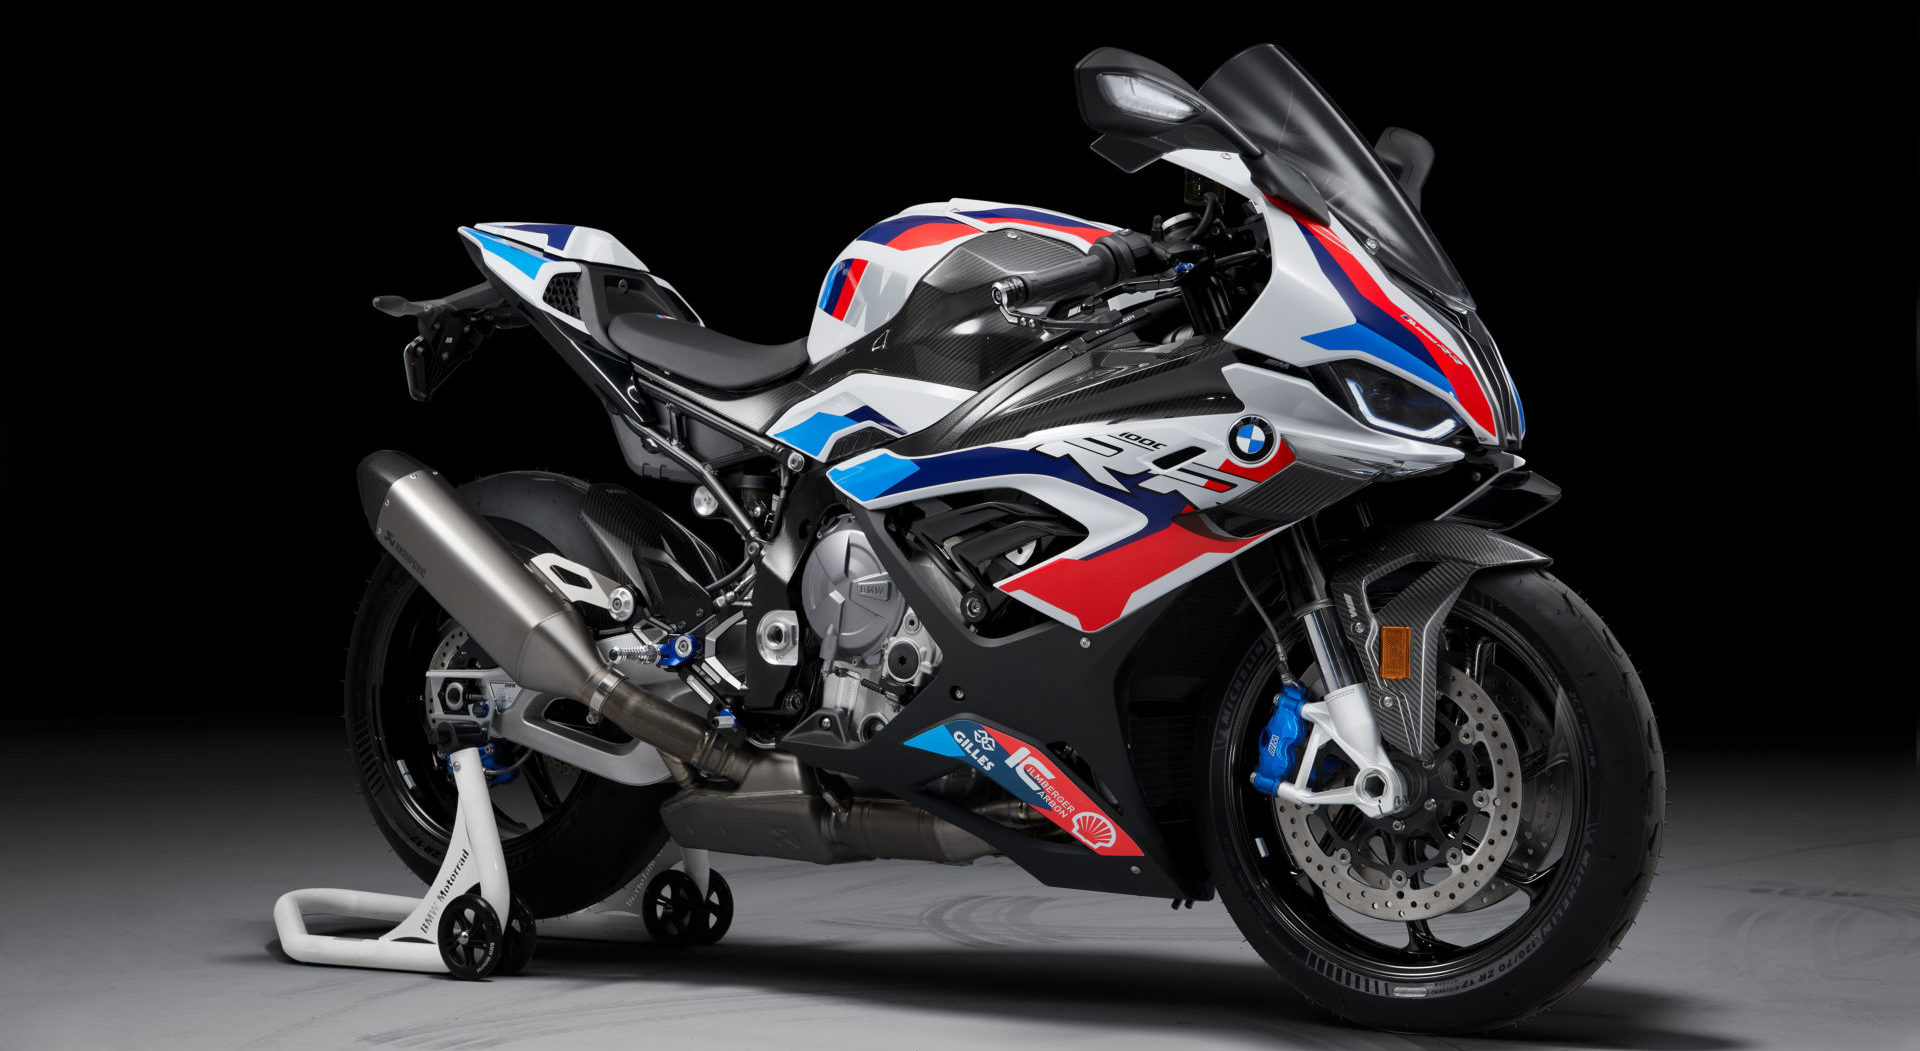 The new BMW M 1000 RR. Photo courtesy BMW Motorrad.